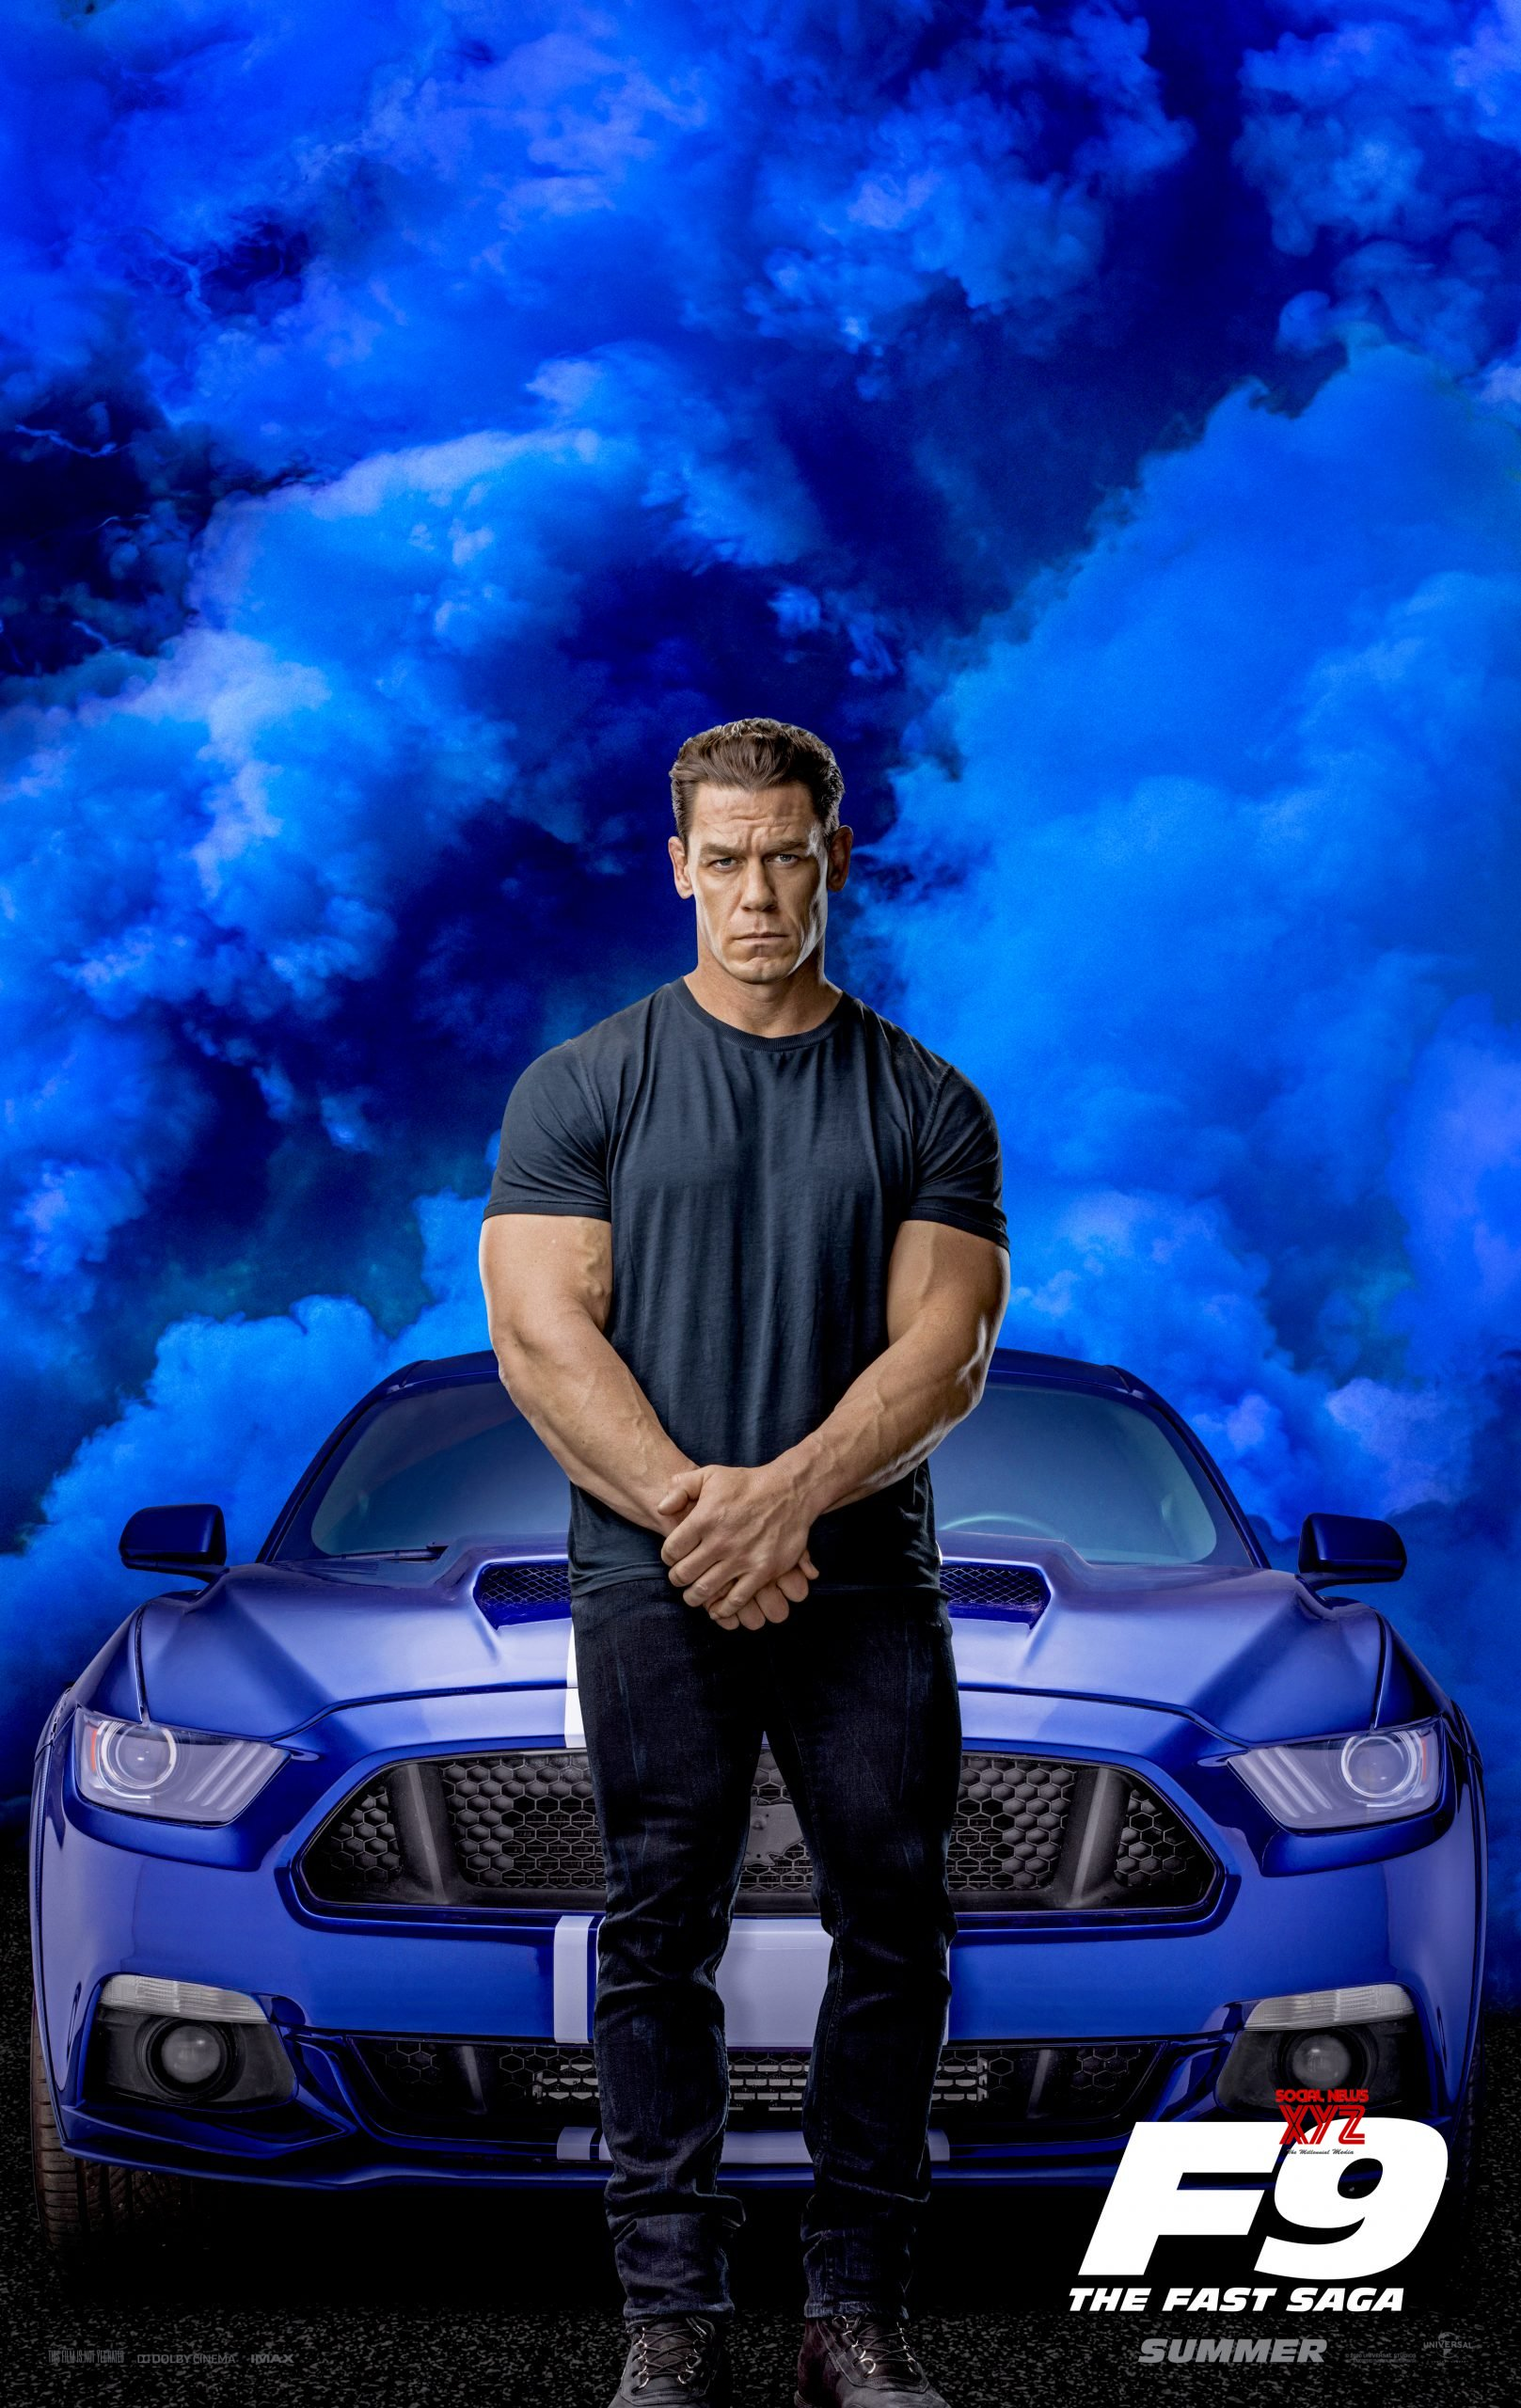 Fast and Furious 9 Trailer & Poster 7